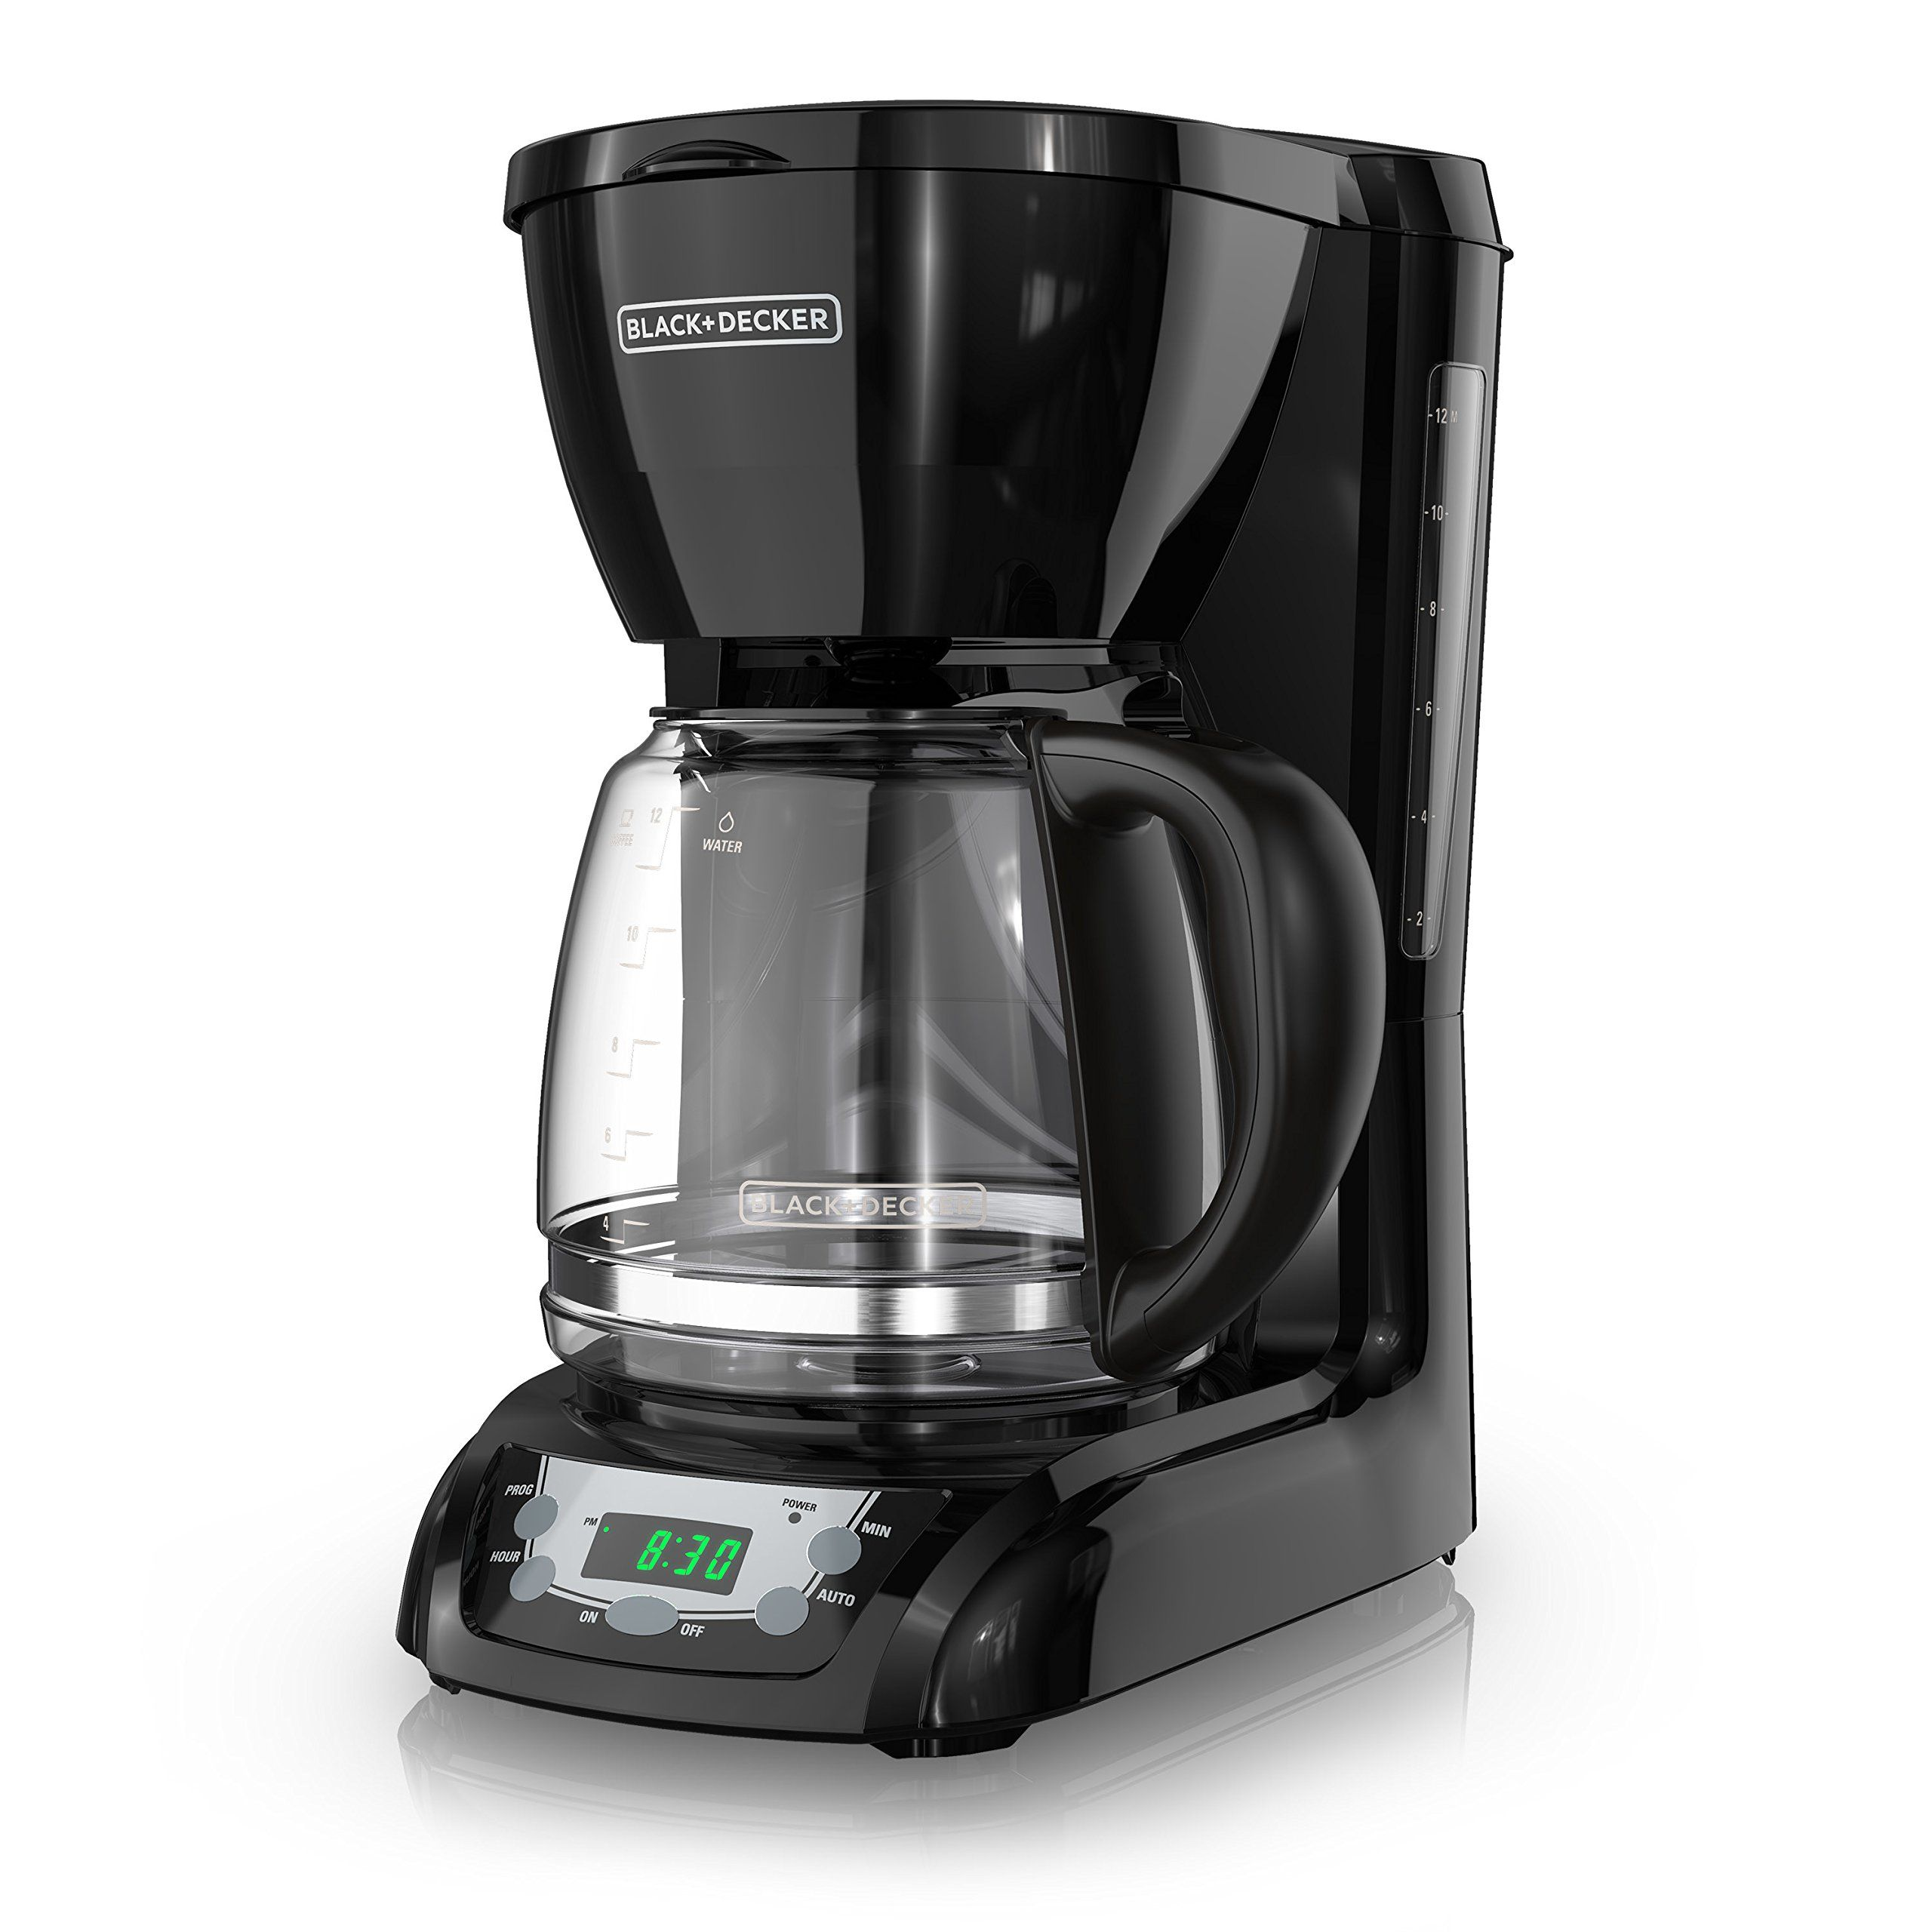 BLACK DECKER DLX1050B Coffee Maker Black Click image